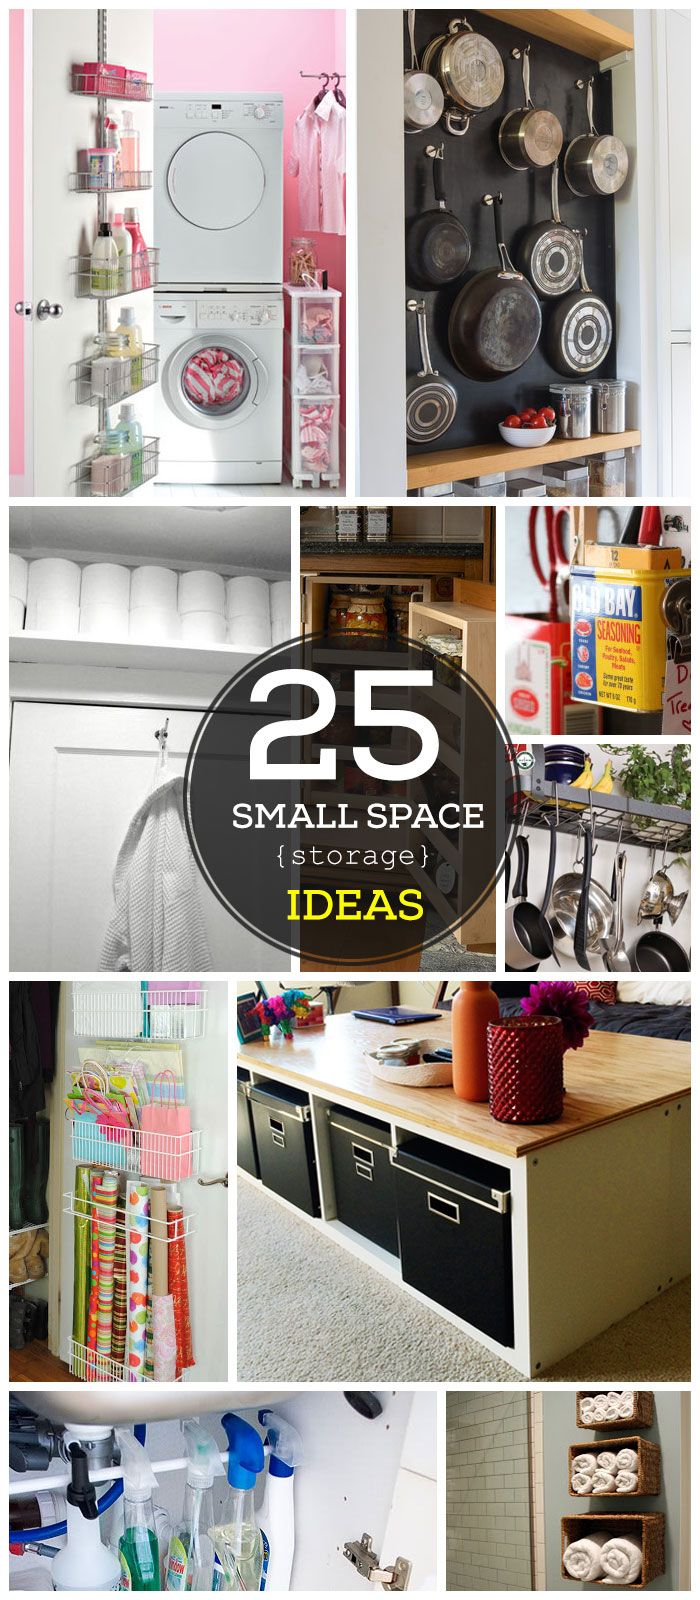 20 Easy Storage Ideas for Small Spaces  Declutter Your Home in No Time!